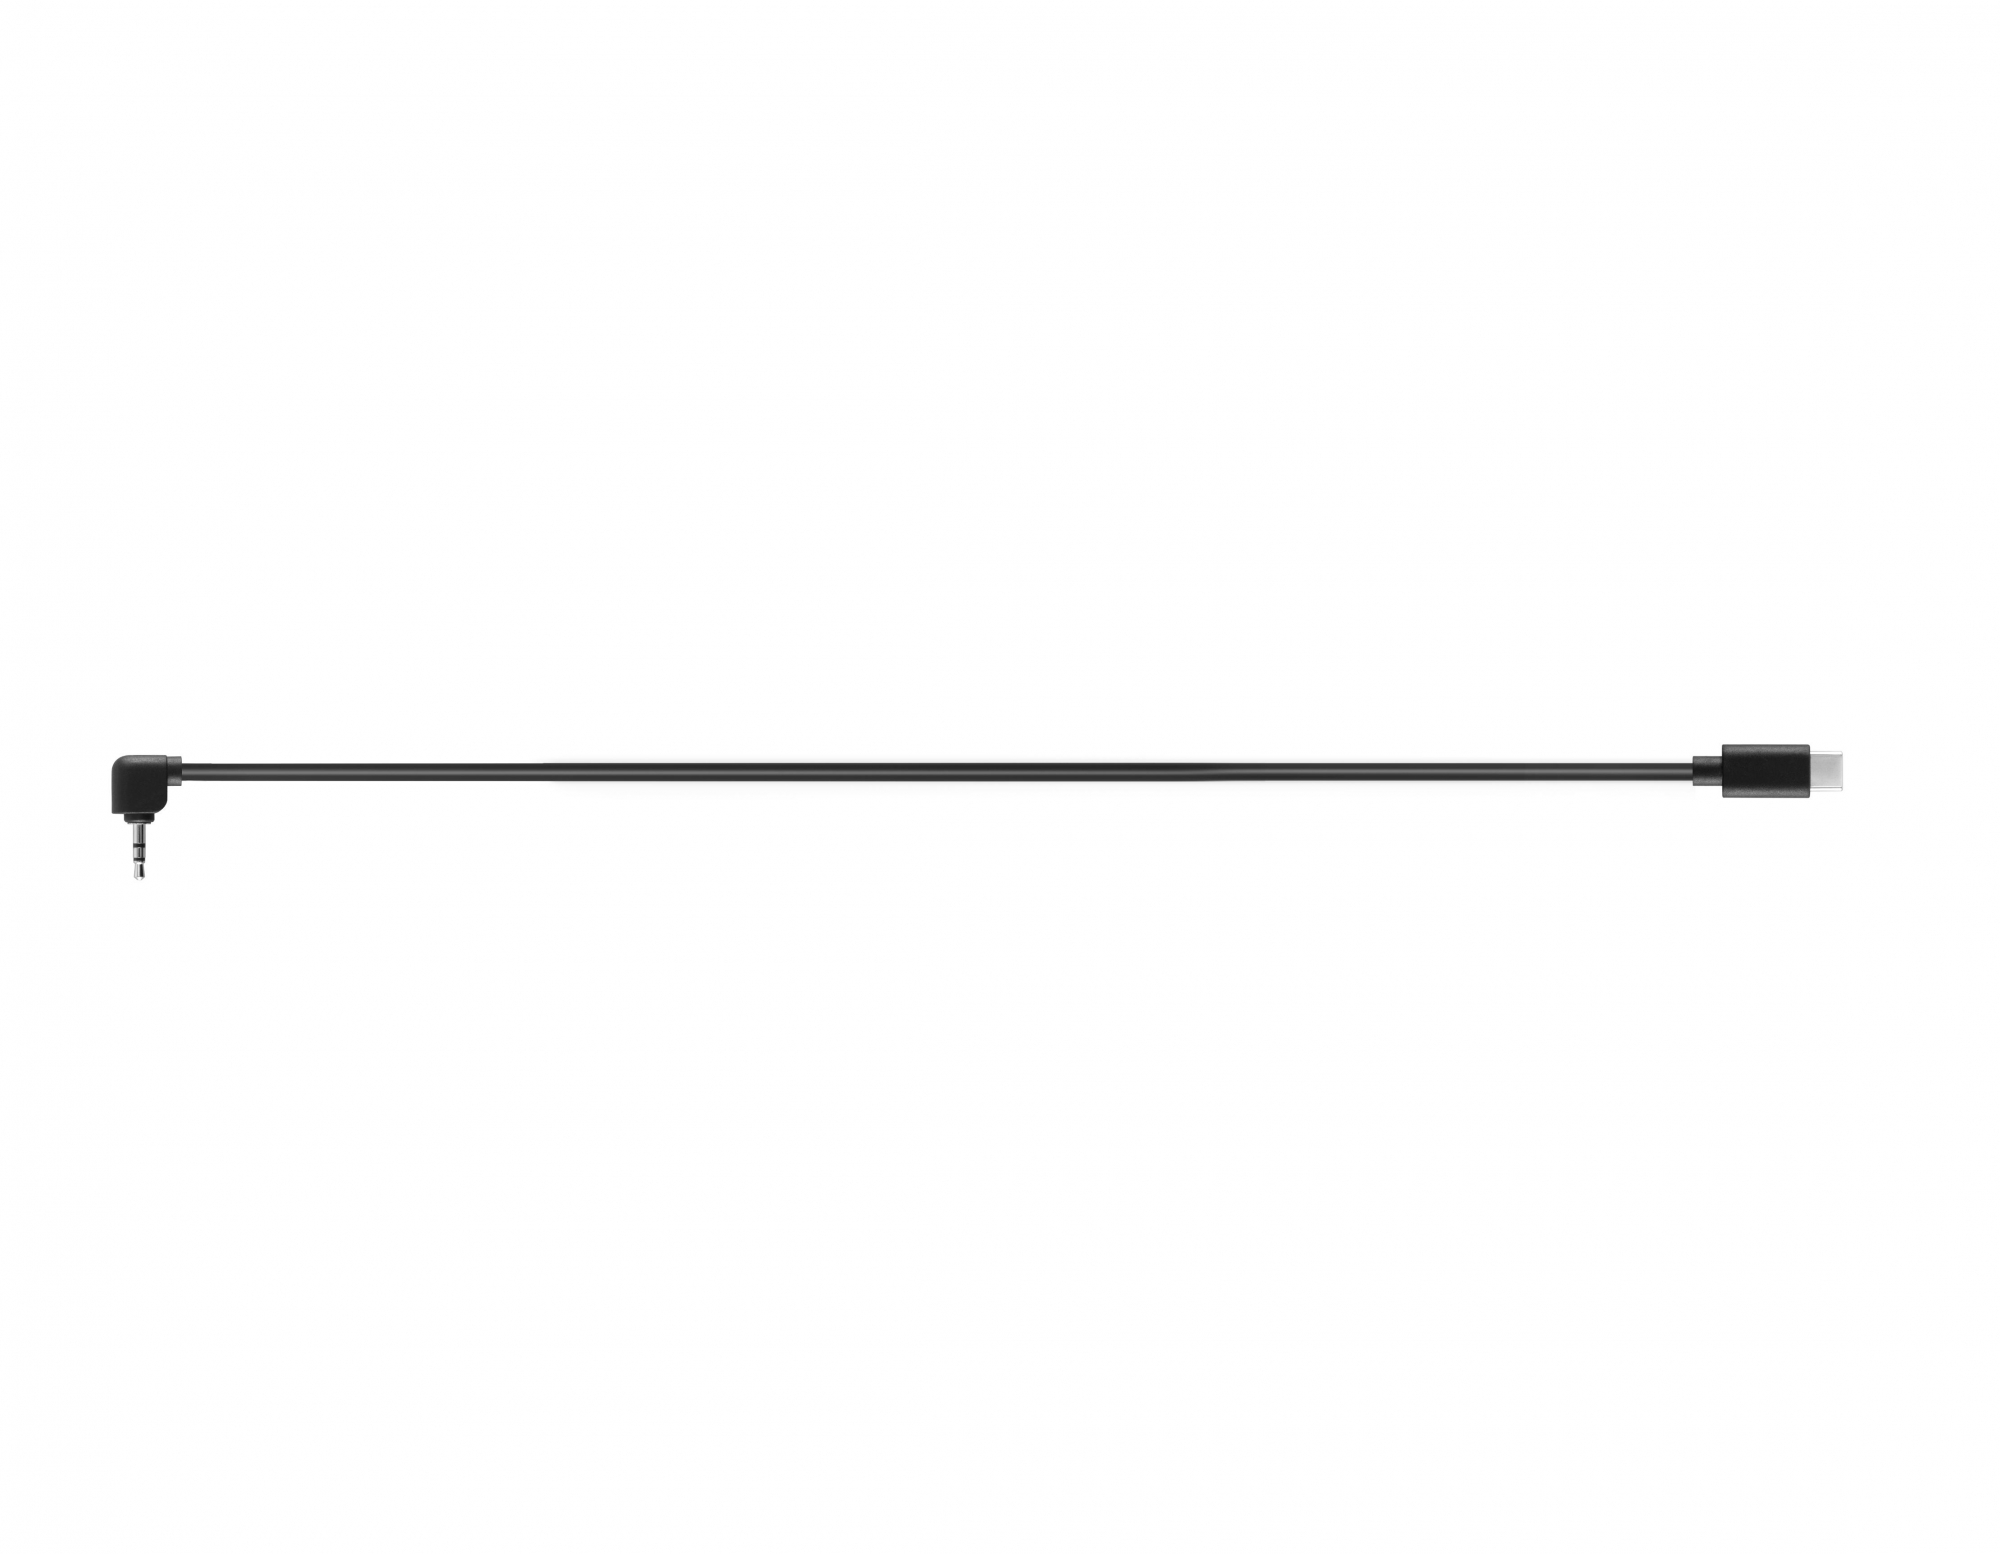 DJI R RSS Control Cable for Fujifilm